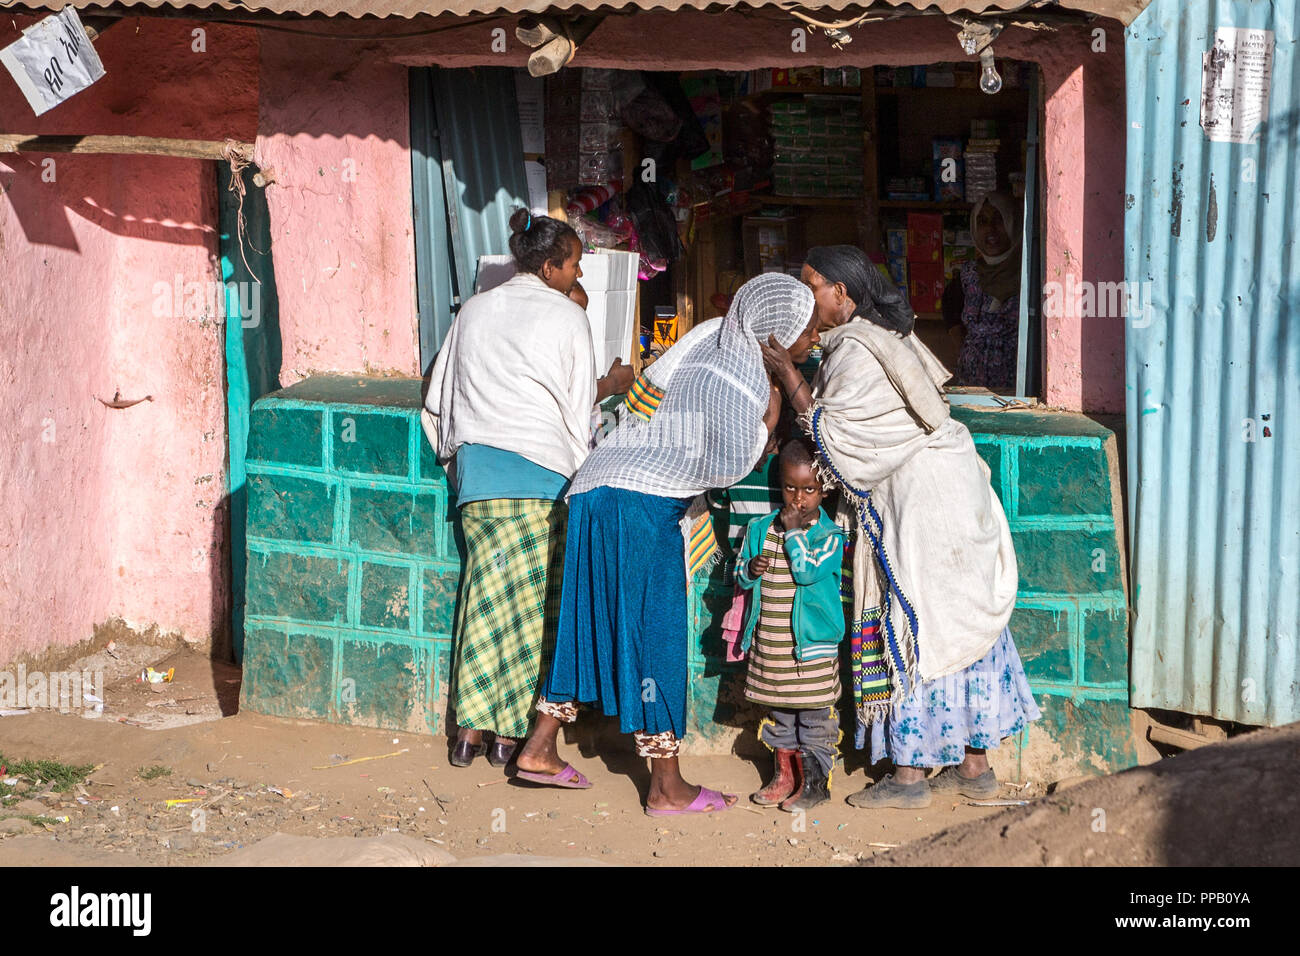 Amhara Region, Village, Ethiopia, Warm embrace by a shop - Stock Image